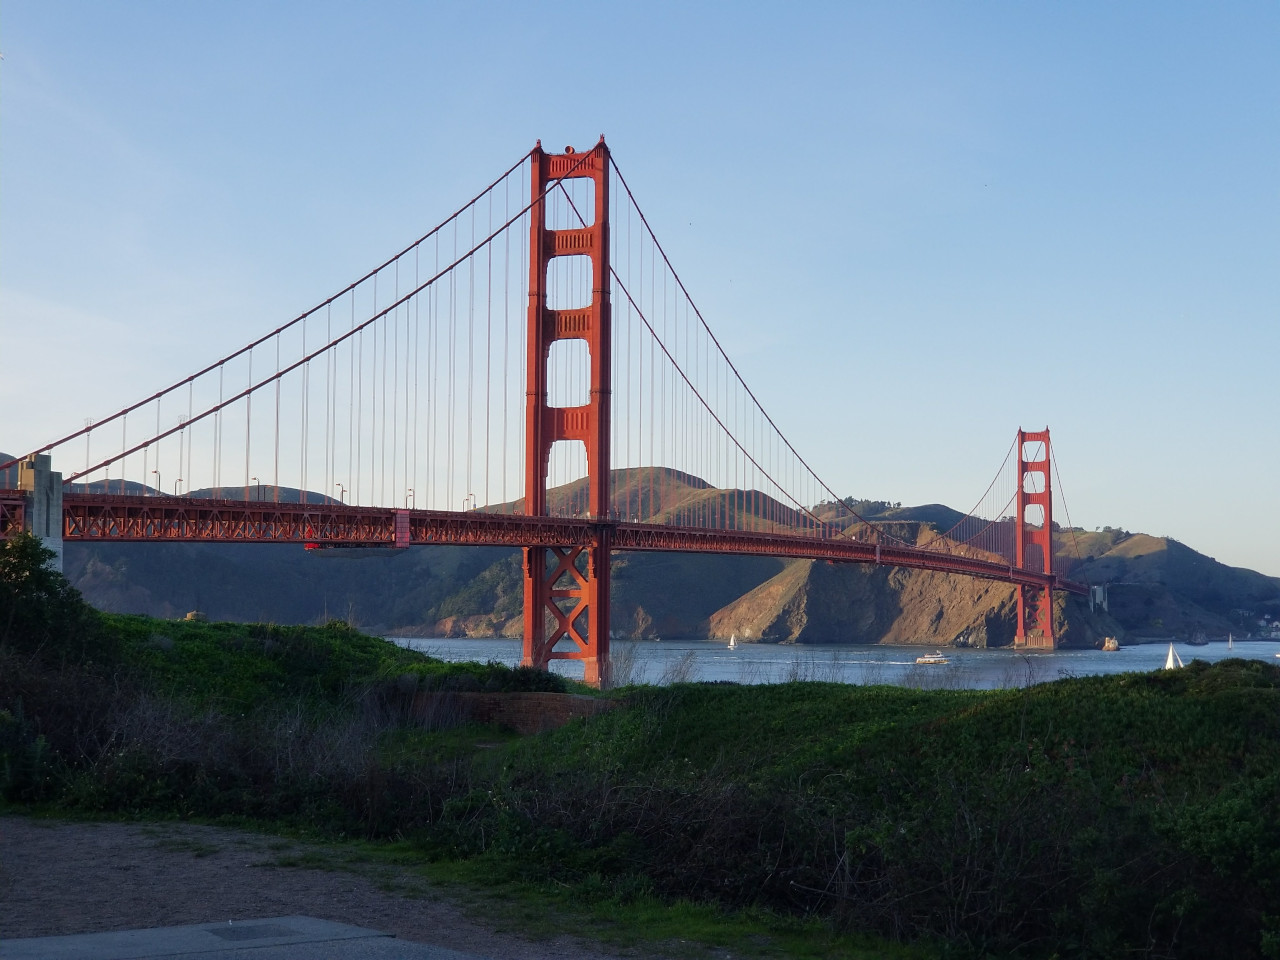 Local's guide to San Francisco with the best places to see in San Francisco, restaurants, hotels, and tips #sanfrancisco #sf #usa #travel